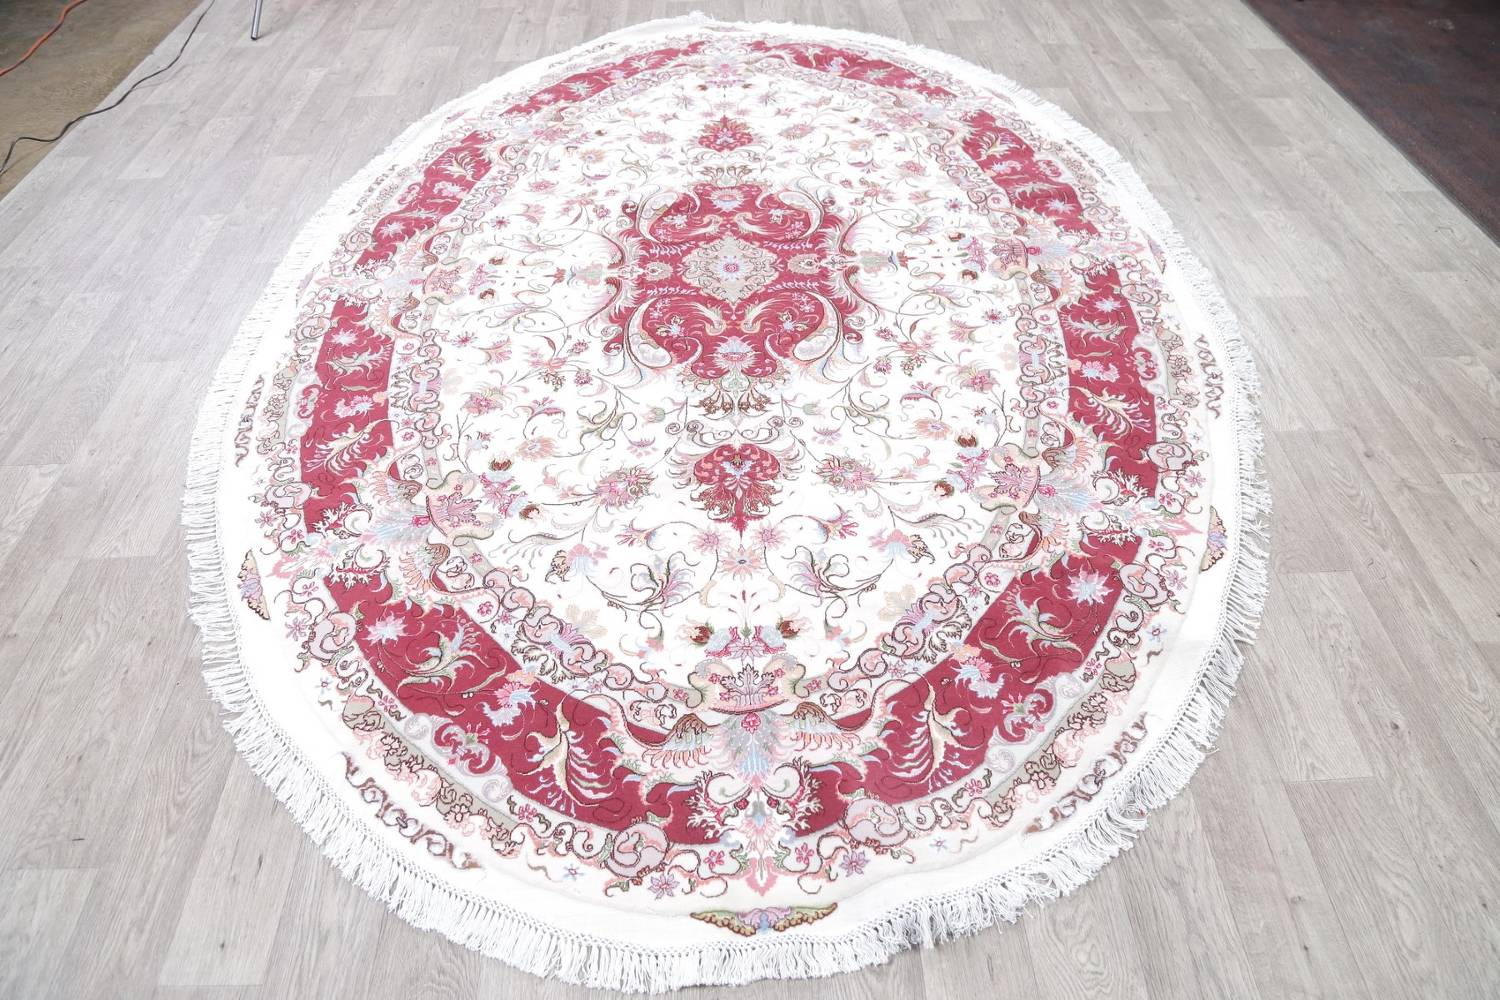 Vegetable Dye Floral Ivory Tabriz Persian Hand-Knotted Area Rug 7x10 image 17